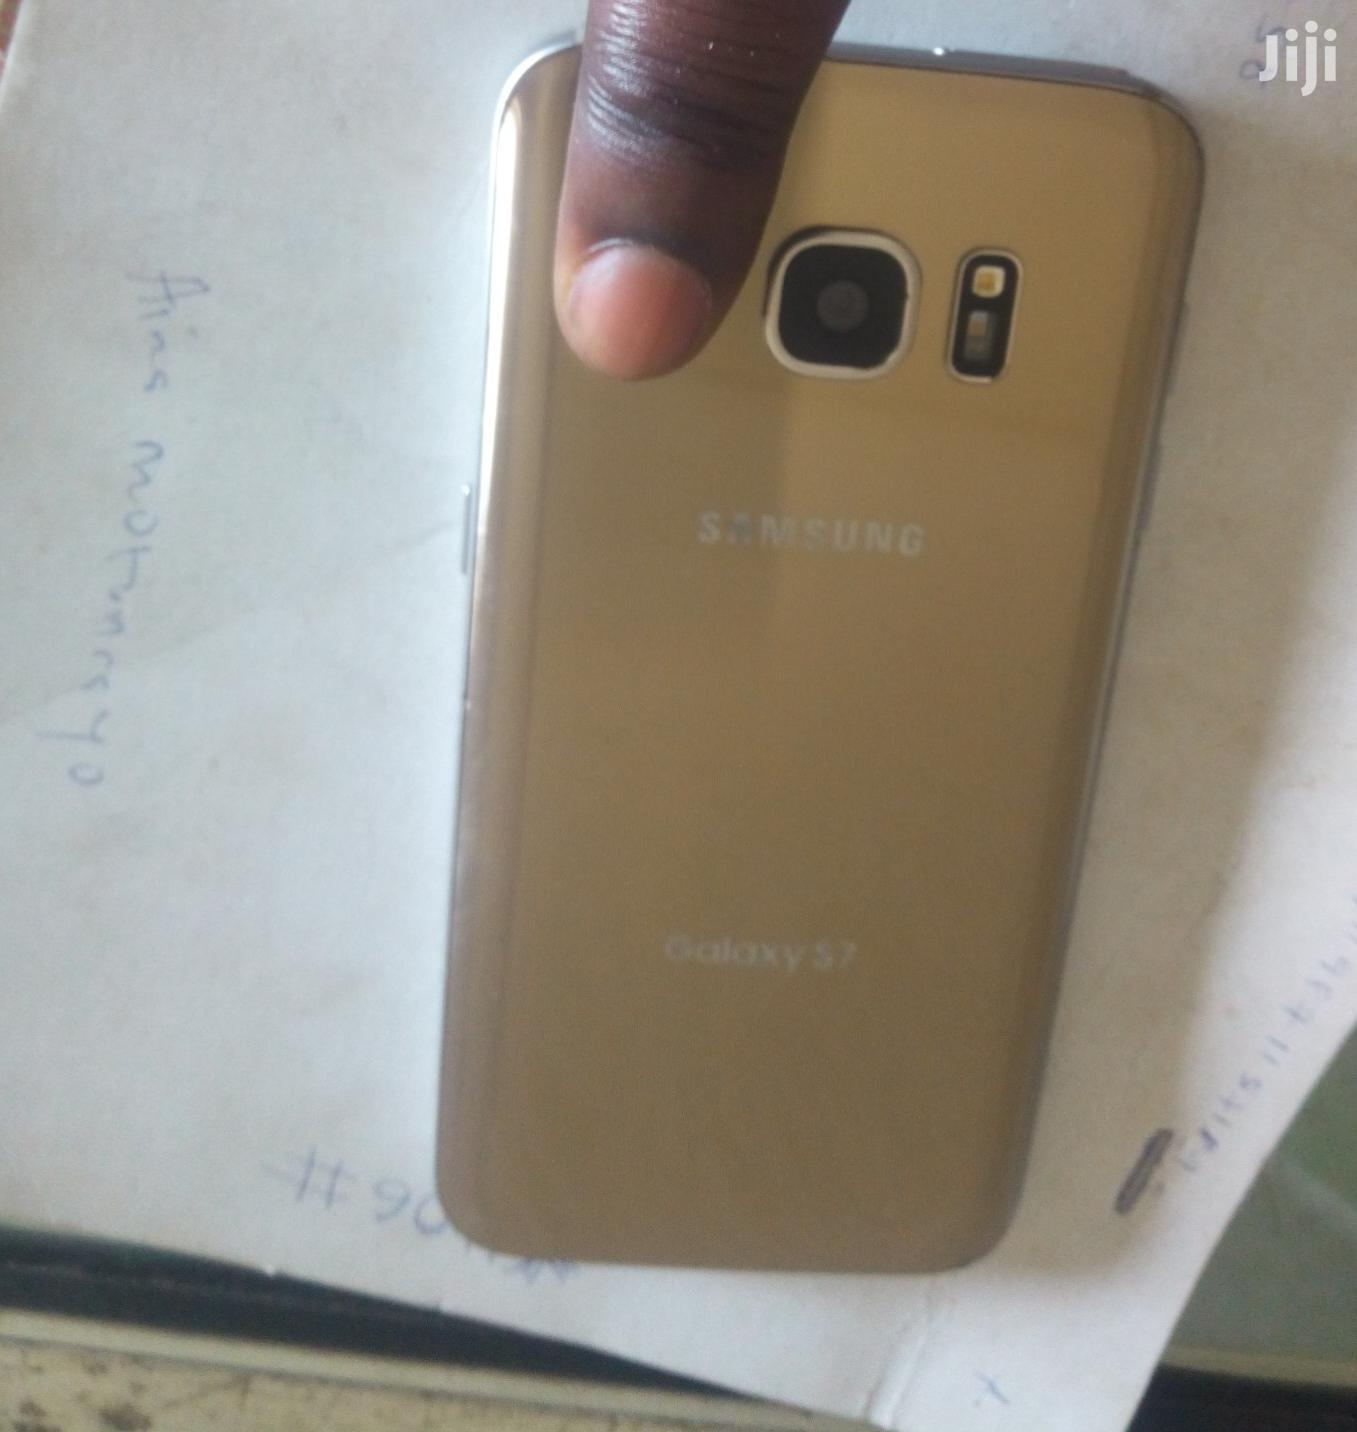 Samsung Galaxy S7 64 GB Gold   Mobile Phones for sale in Ibadan, Oyo State, Nigeria